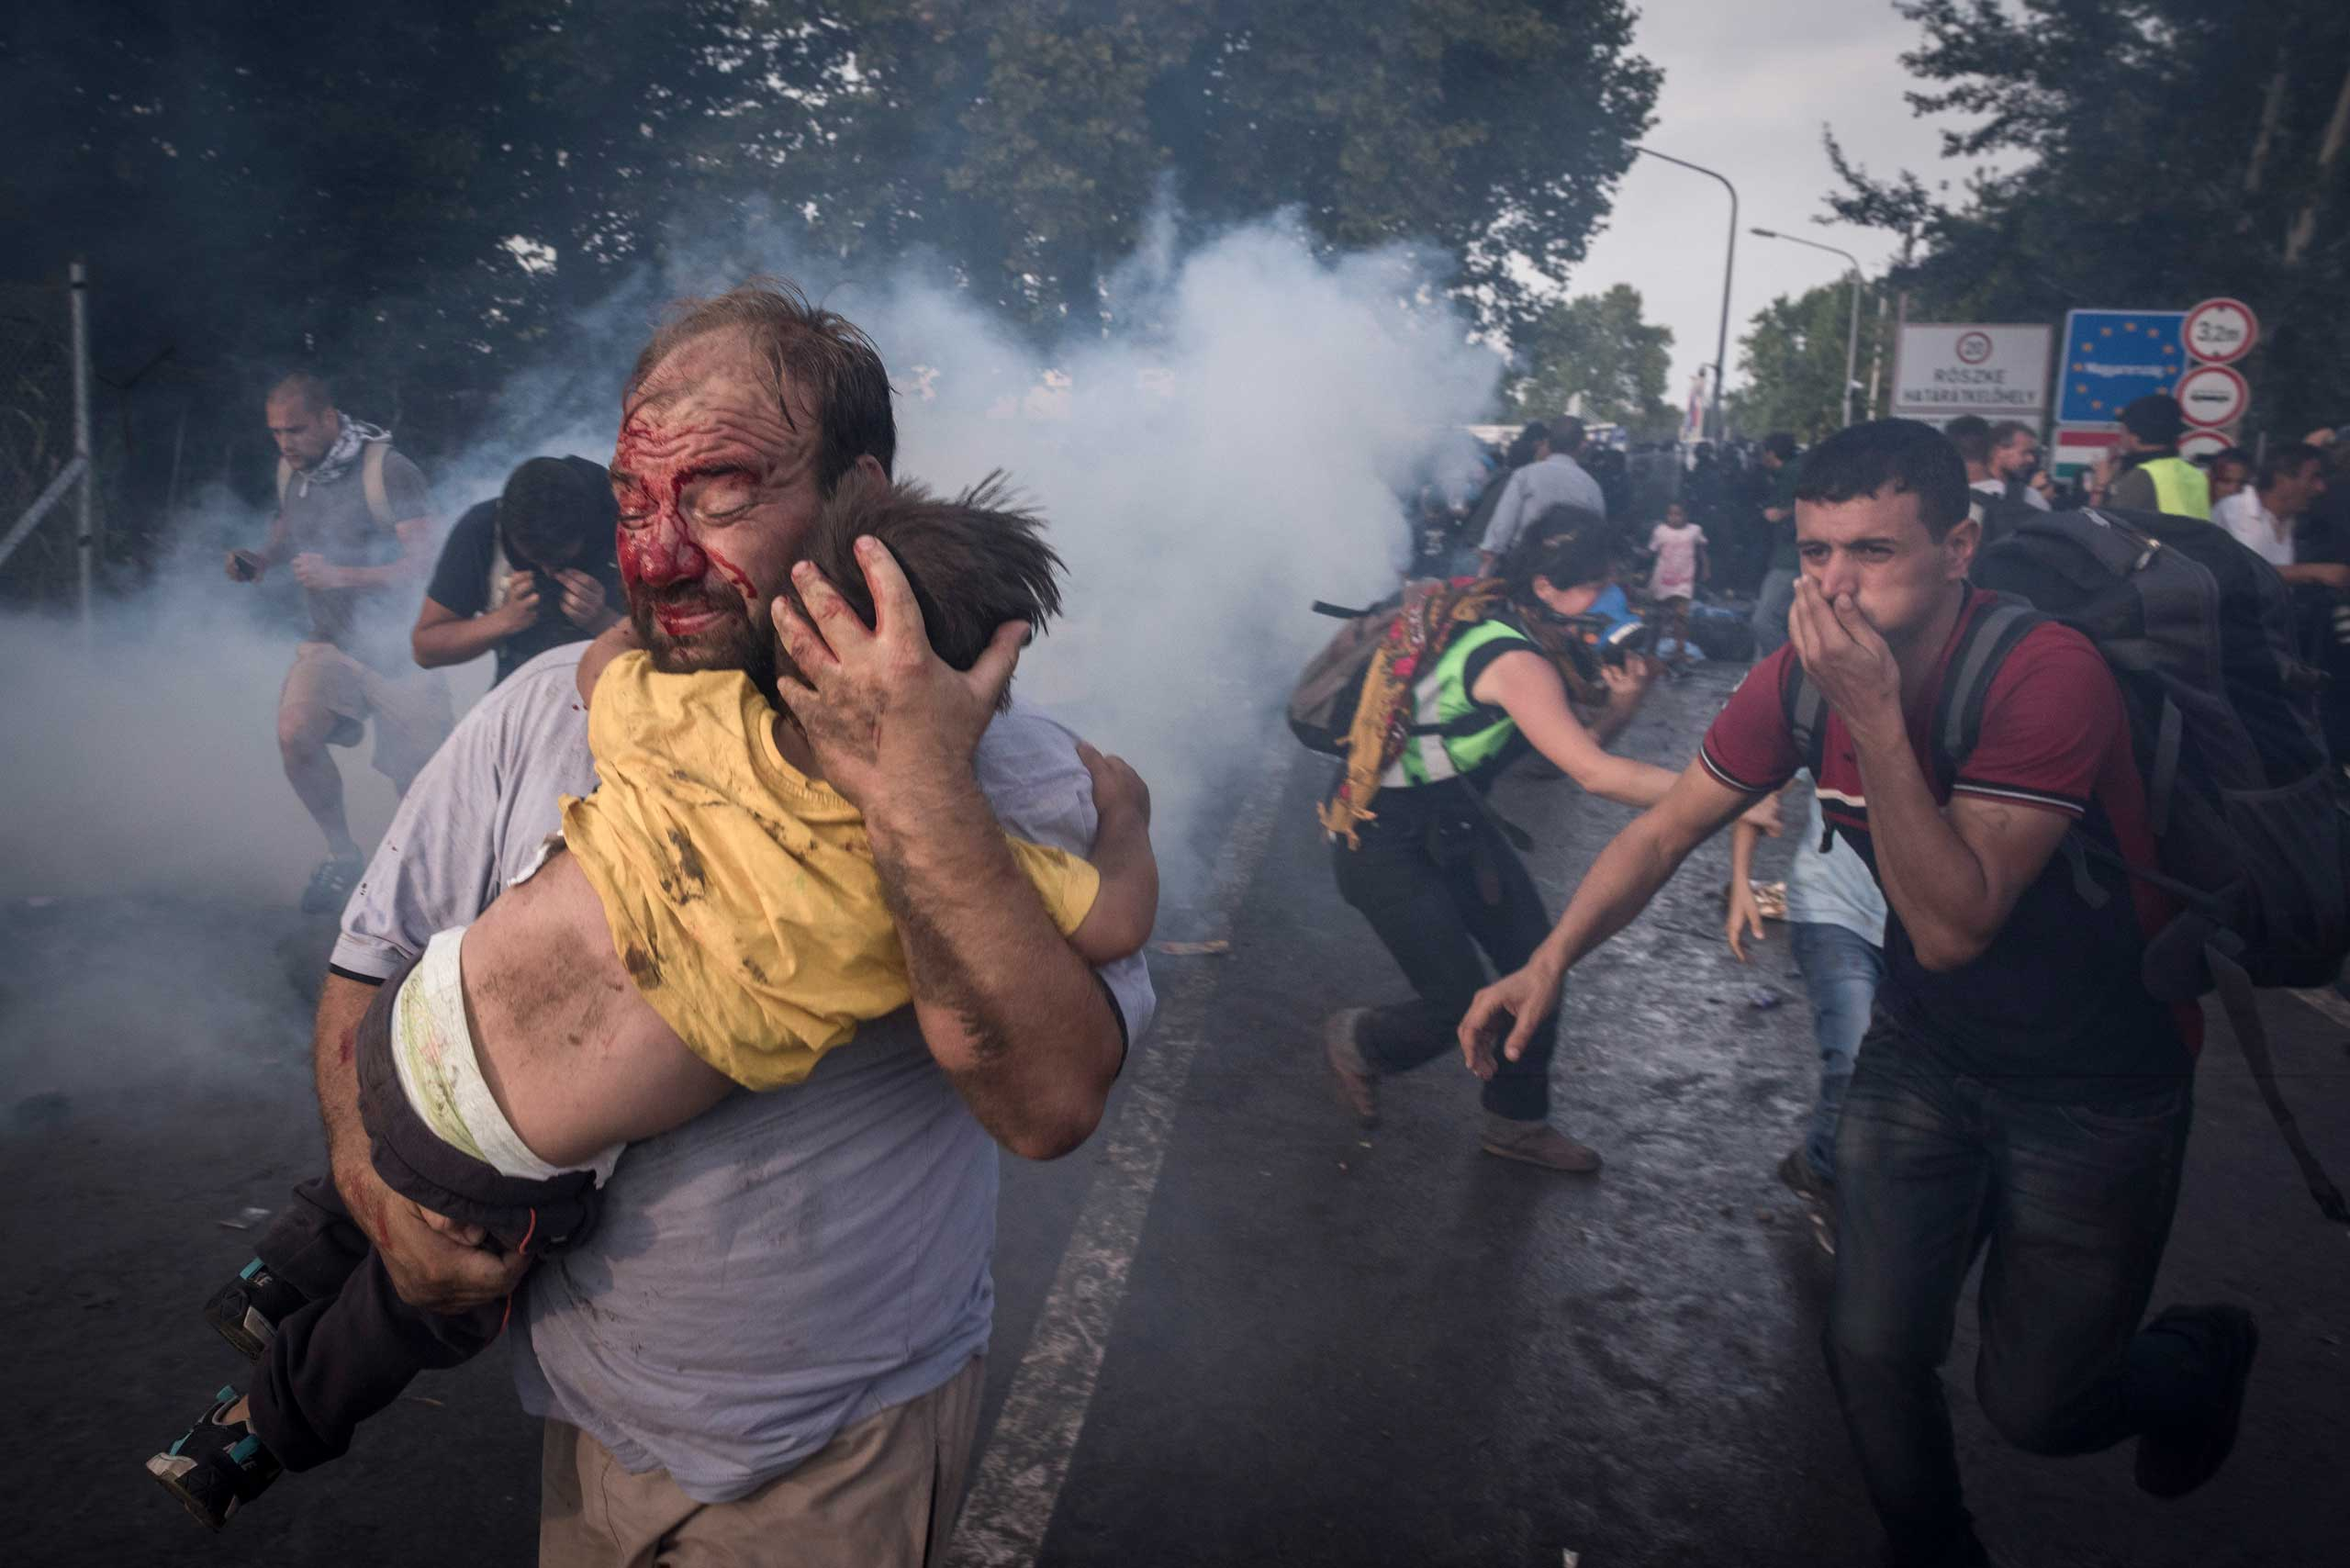 A migrant holds his child during a clash with Hungarian riot police at the Horgos border crossing in Serbia, on Sept. 16, 2015.